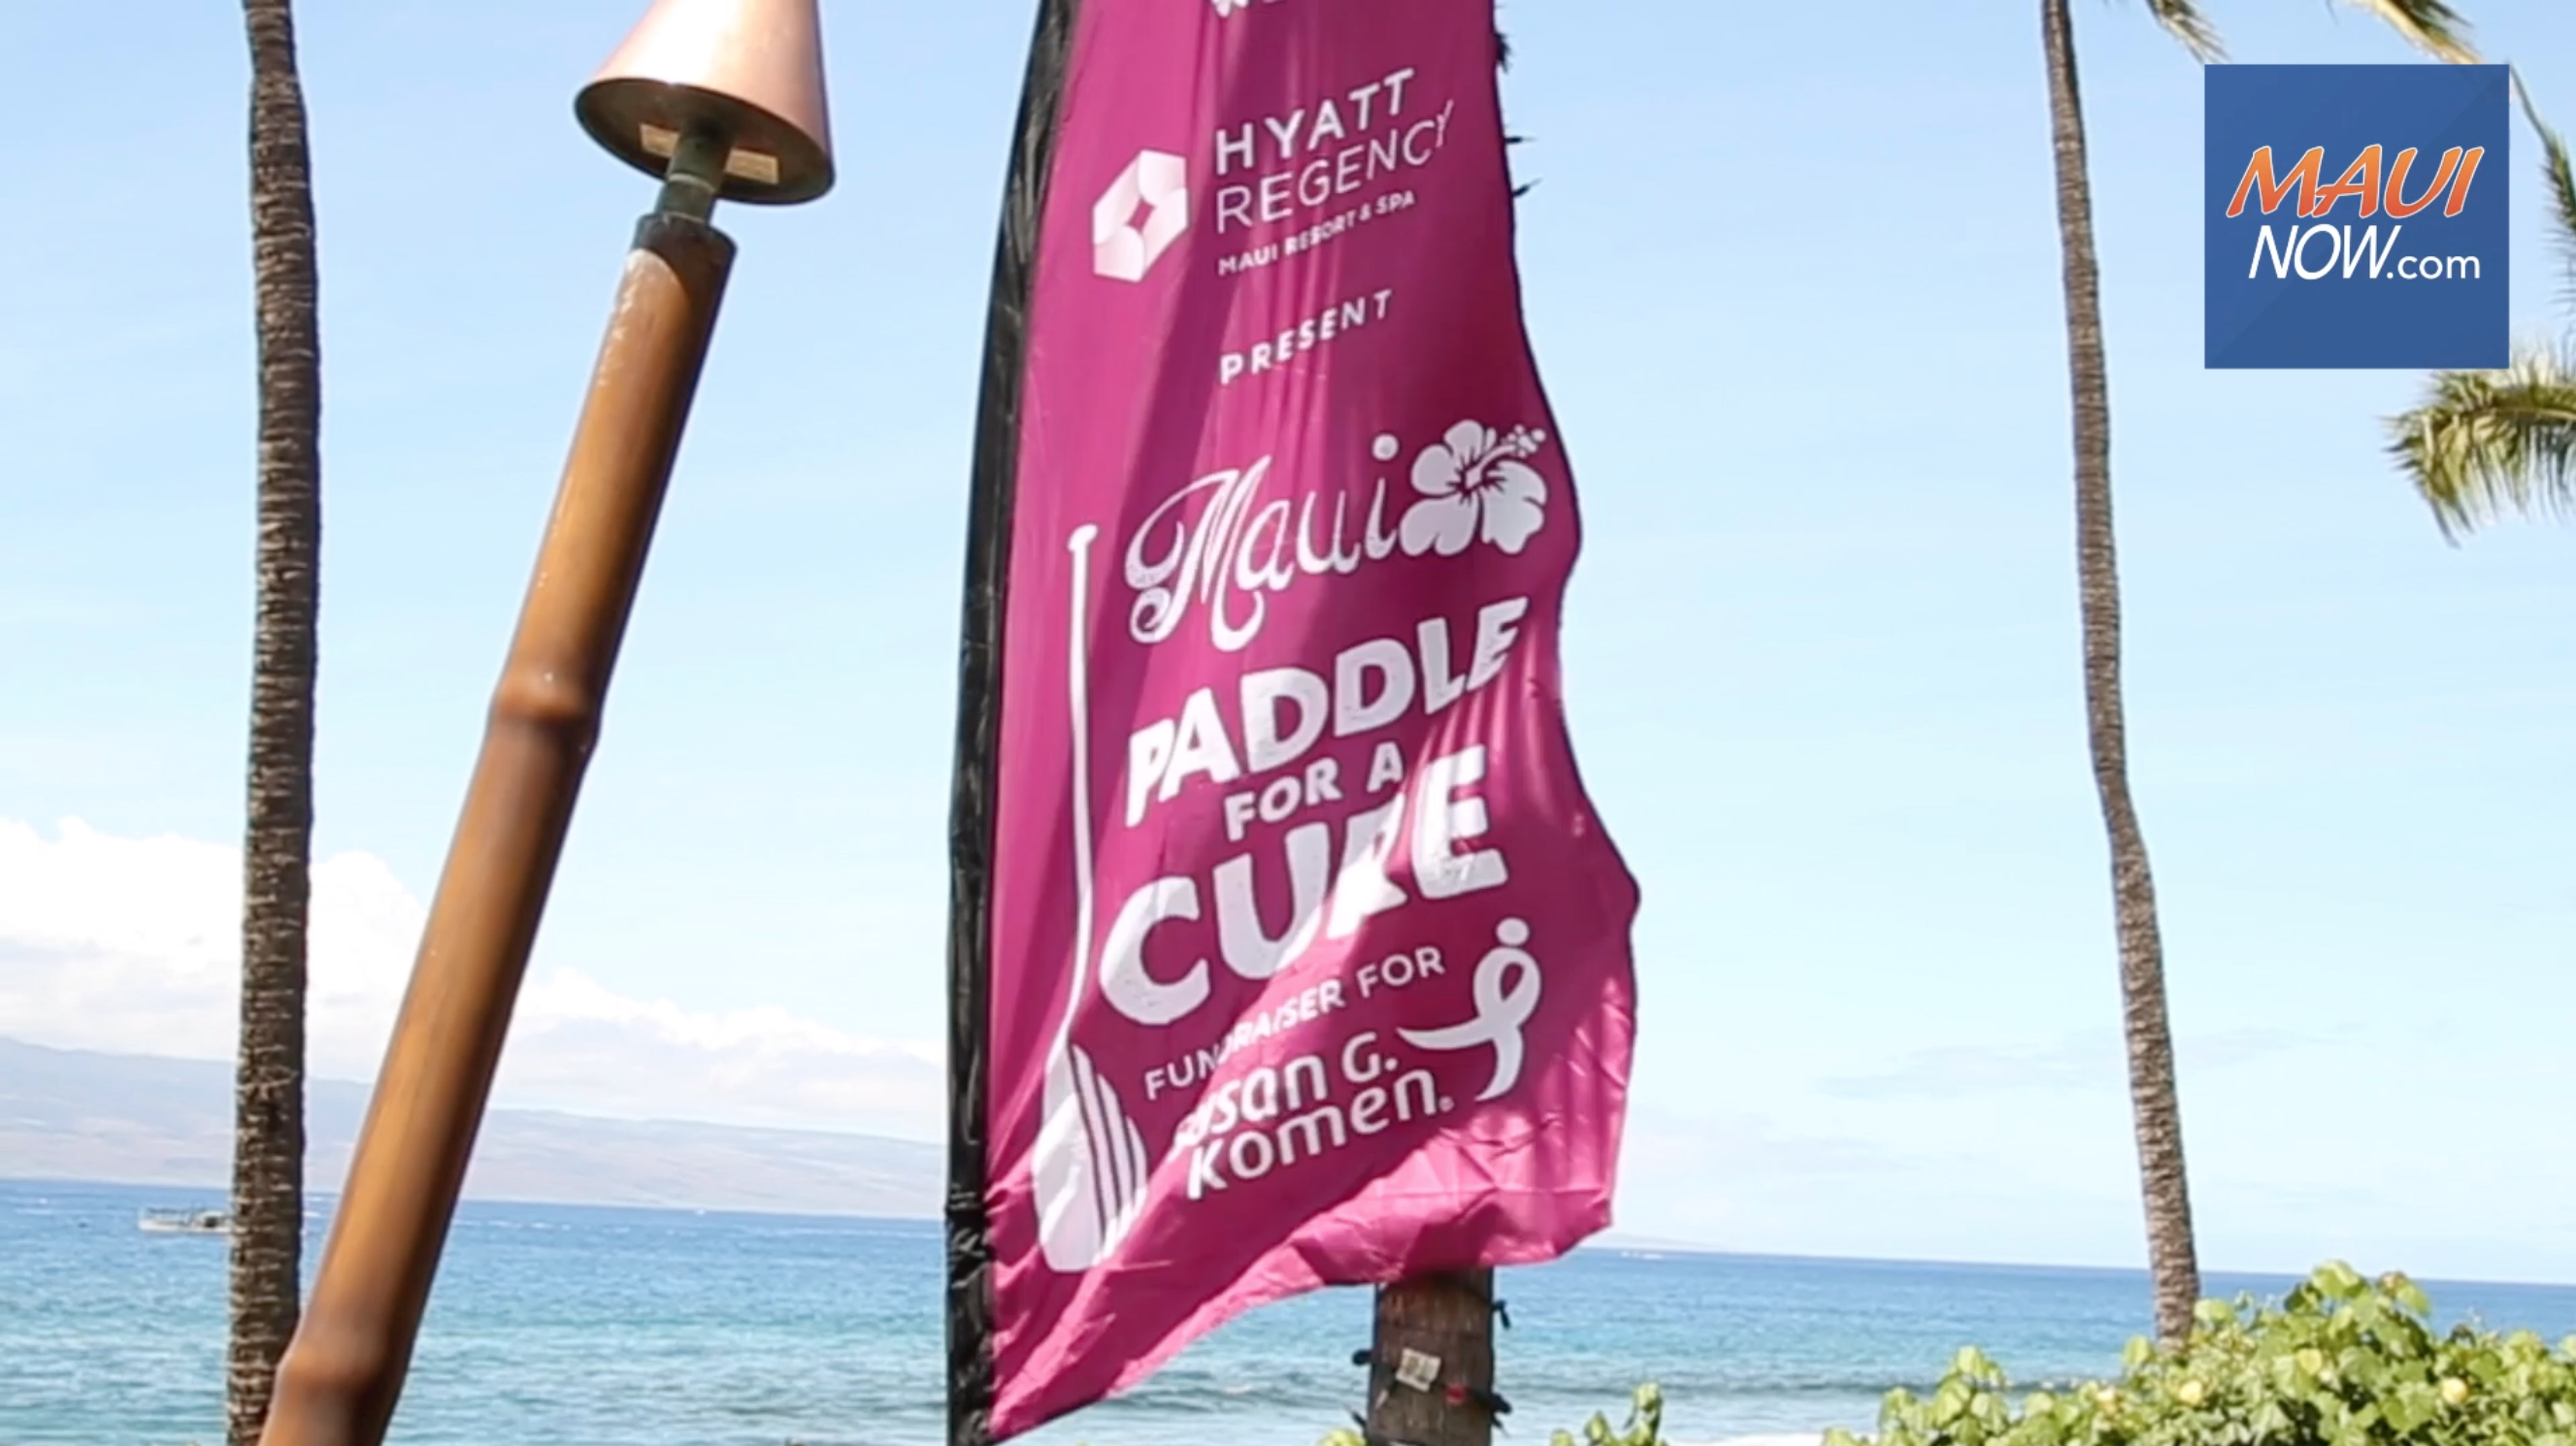 Hyatt Kicks Off 6th Annual Paddle for a Cure